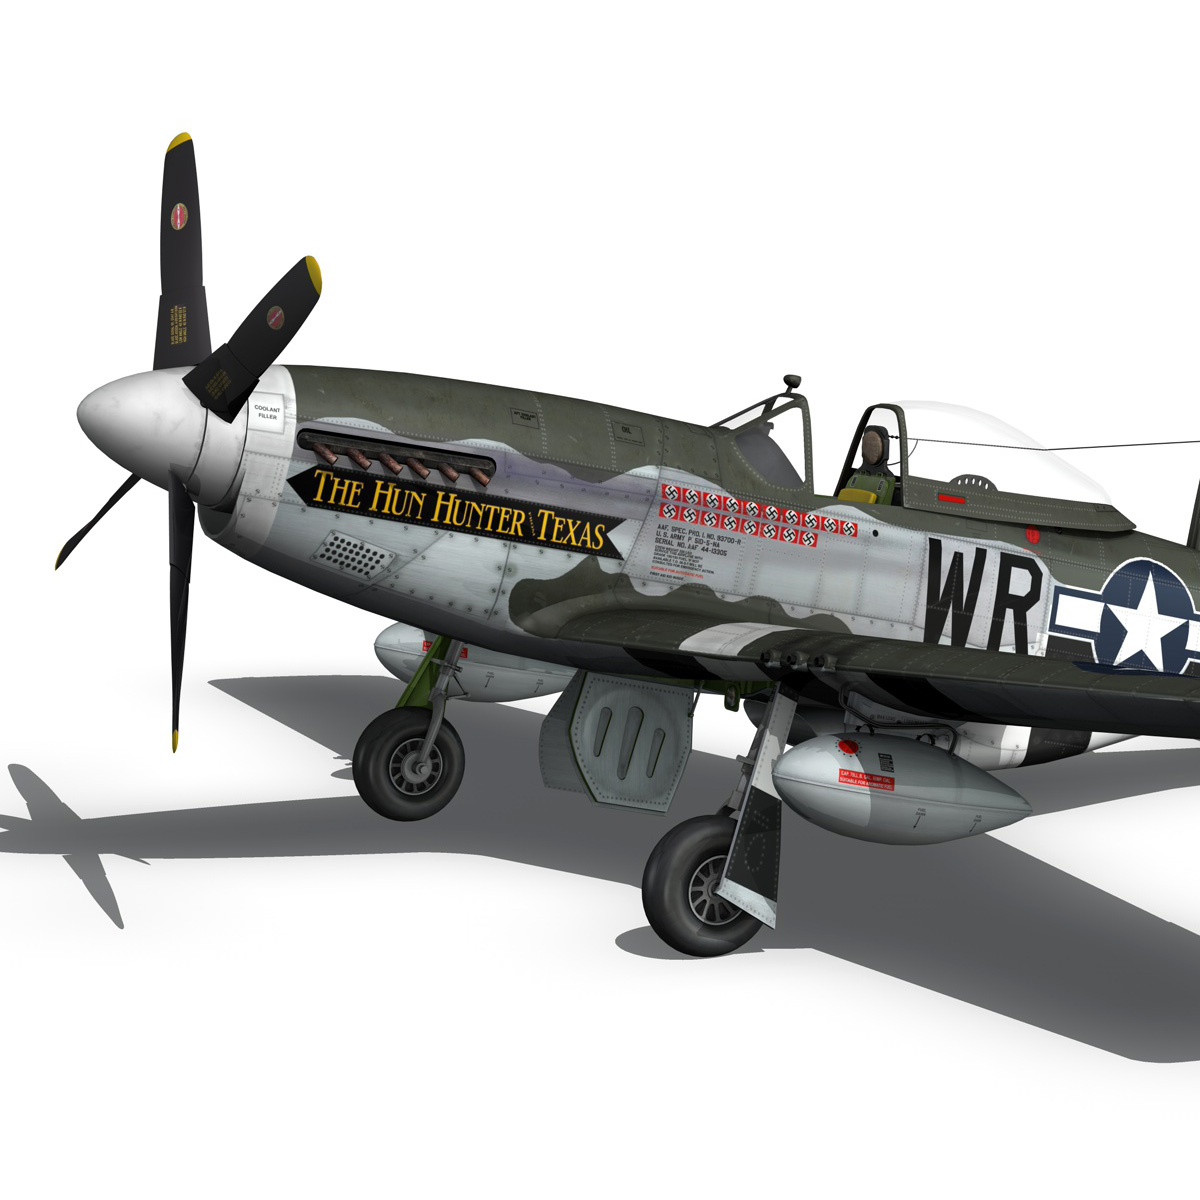 north american p-51d – the hun hunter / texas 3d model fbx c4d lwo obj 282536